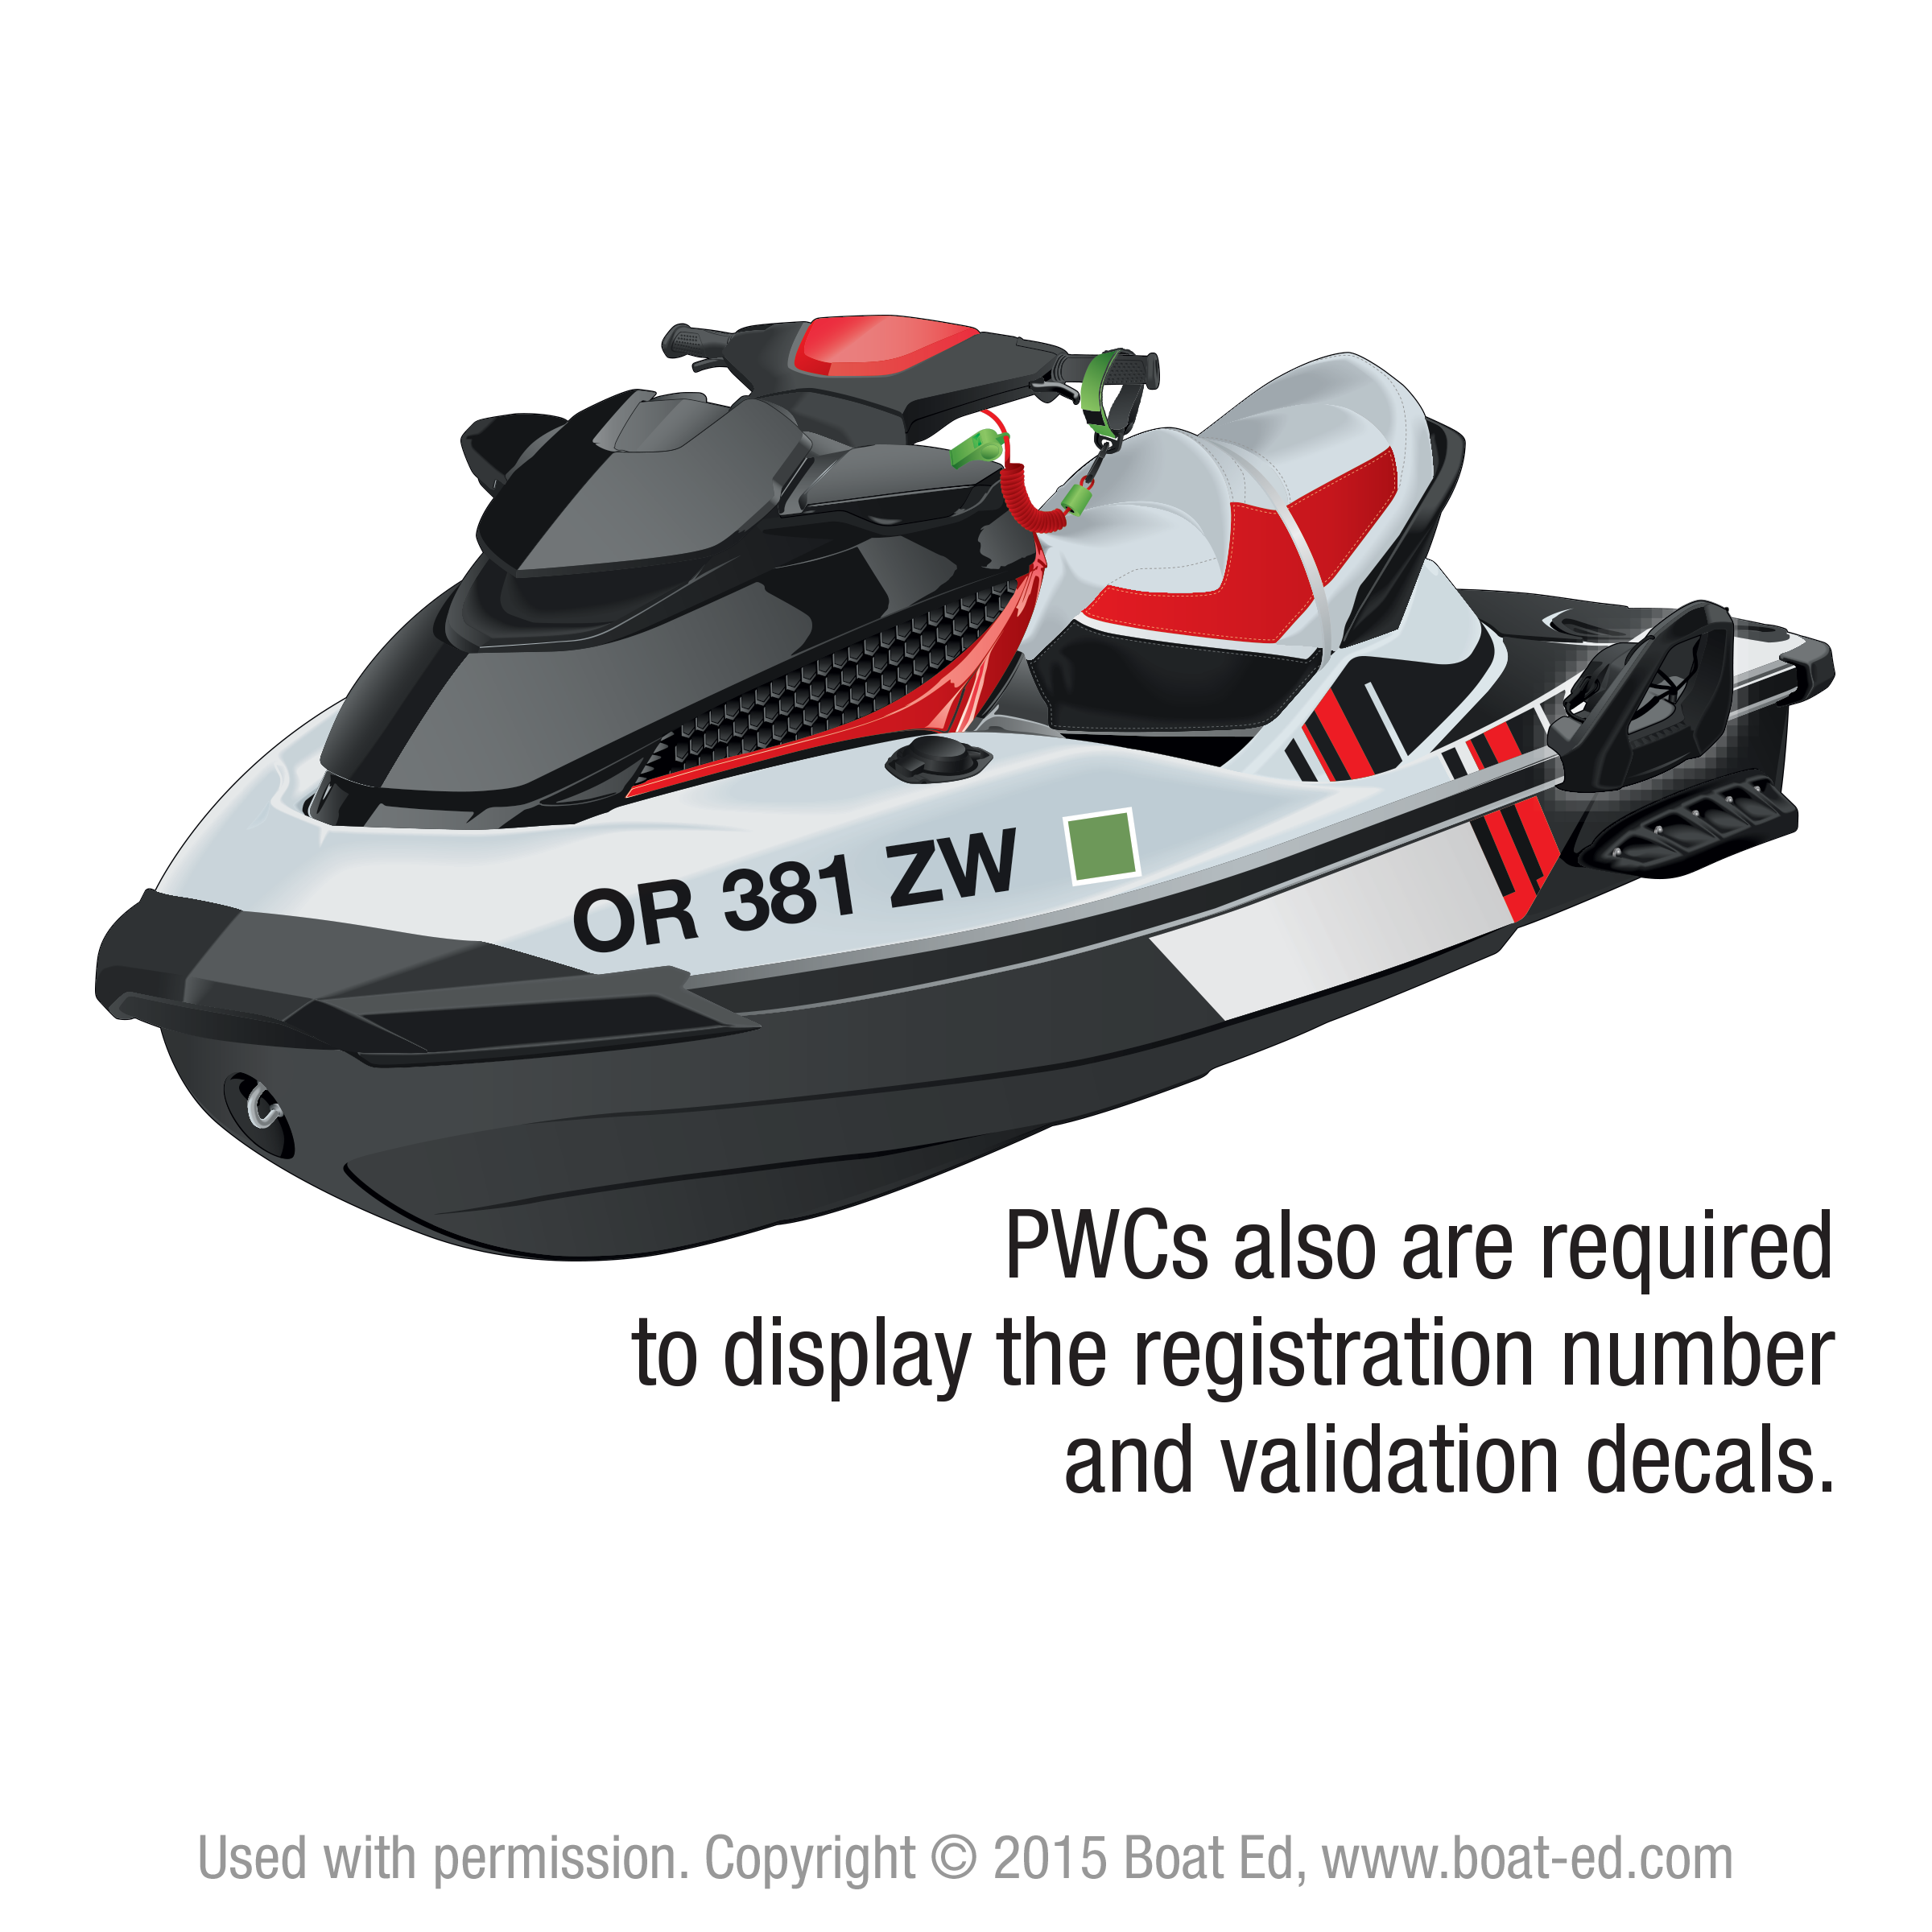 Jet Ski Fuelling Tips For Sea Doo Pwc Rides Intrepid Cottager